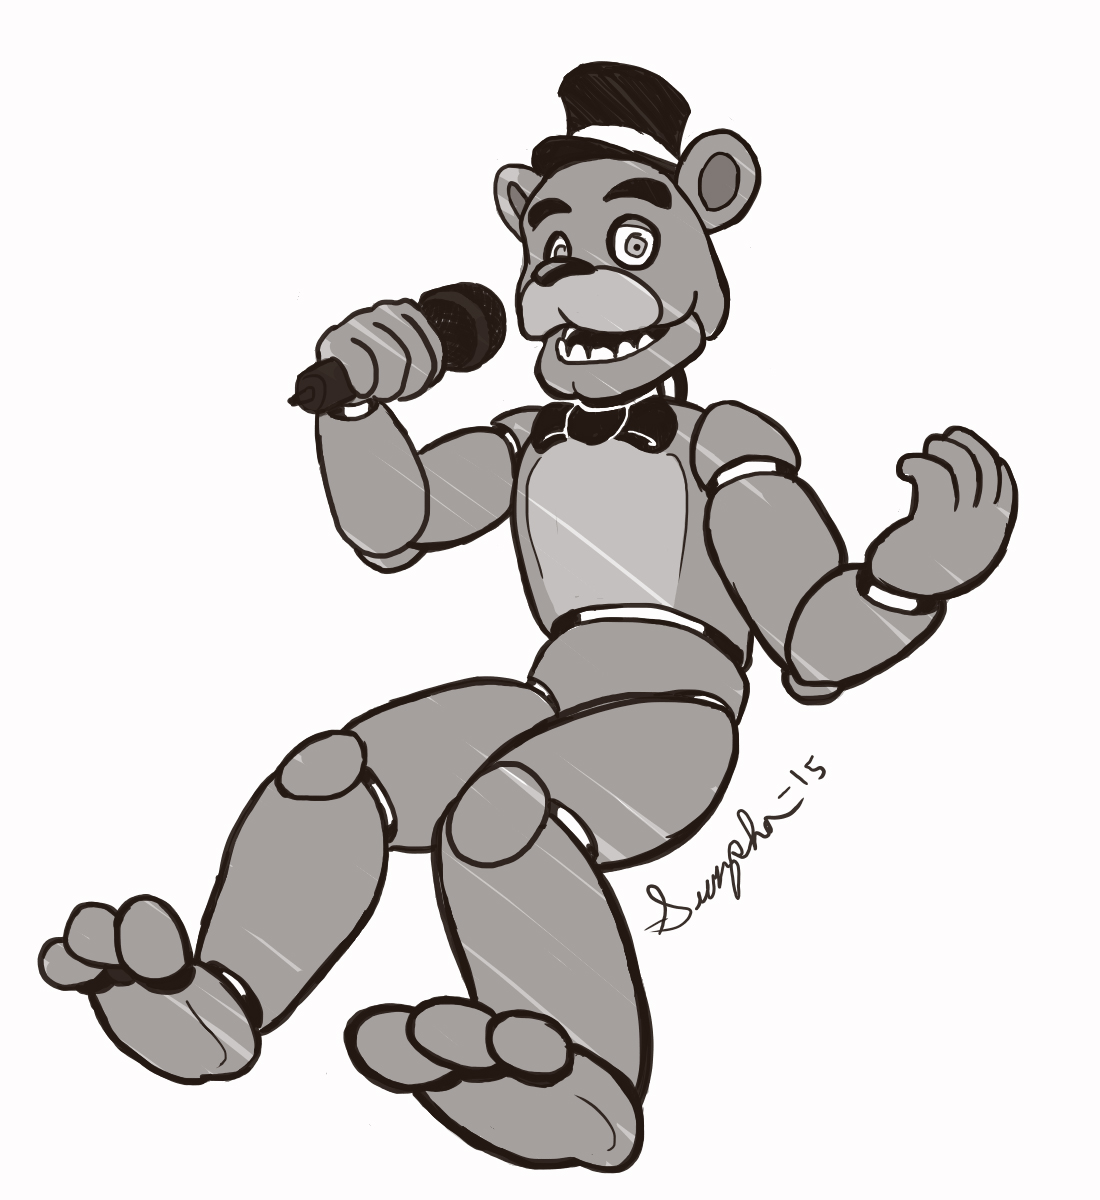 Freddy fazbear pizza colouring pages page 2